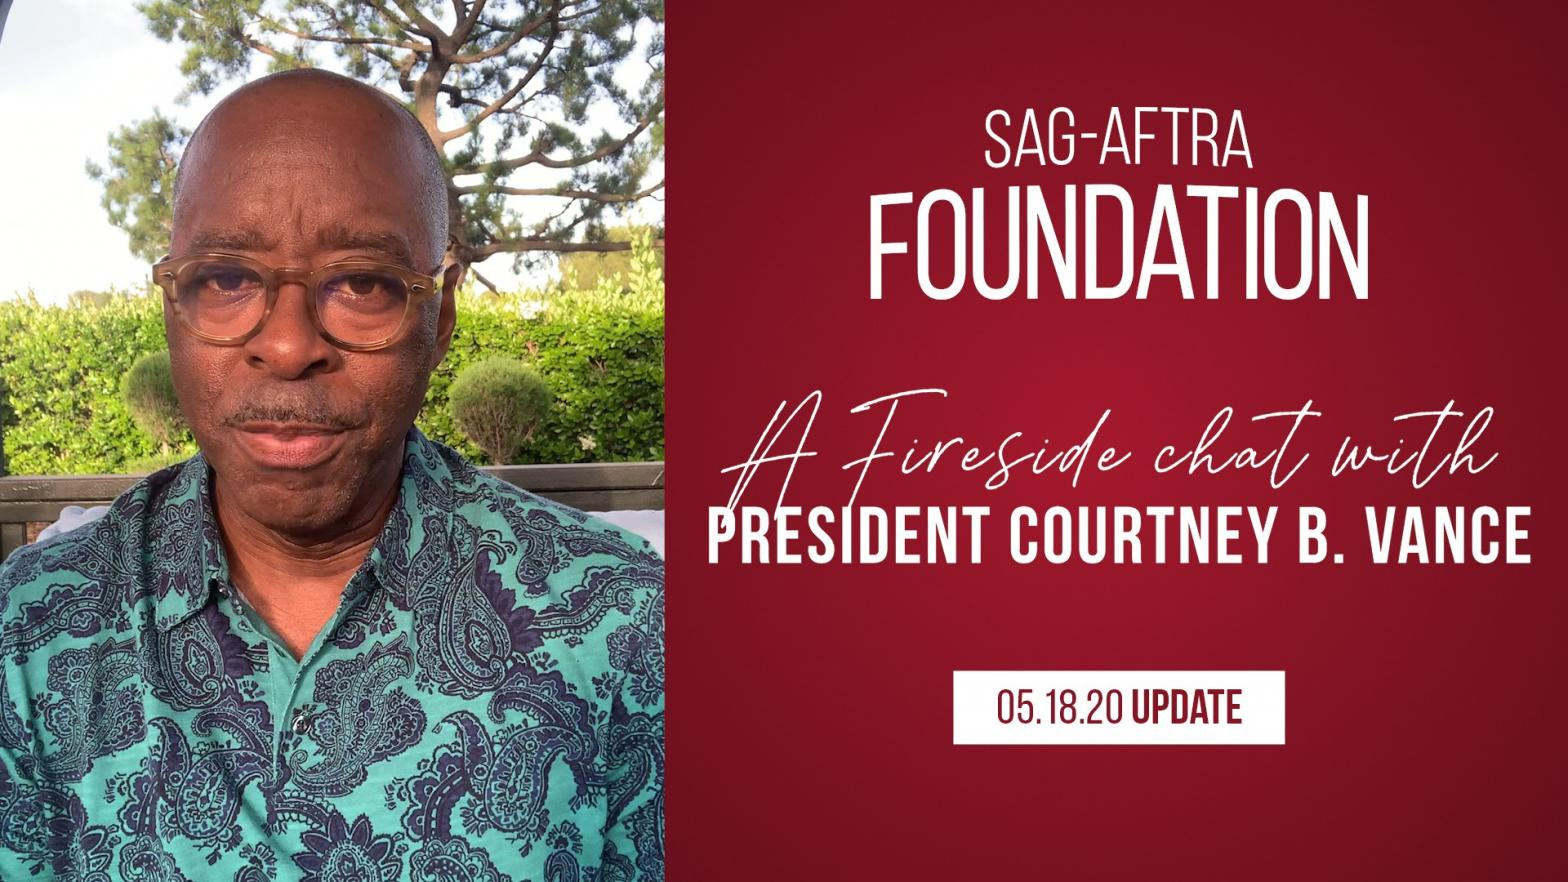 "Vance on the left half wearing a teal & purple button up shirt. On the right from top to bottom, the SAG-AFTRA Foundation Logo in white and ""A Fireside chat with President Courtney B. Vance"" at the bottom in a white box ""05.11.20 Update"" in a deep red"